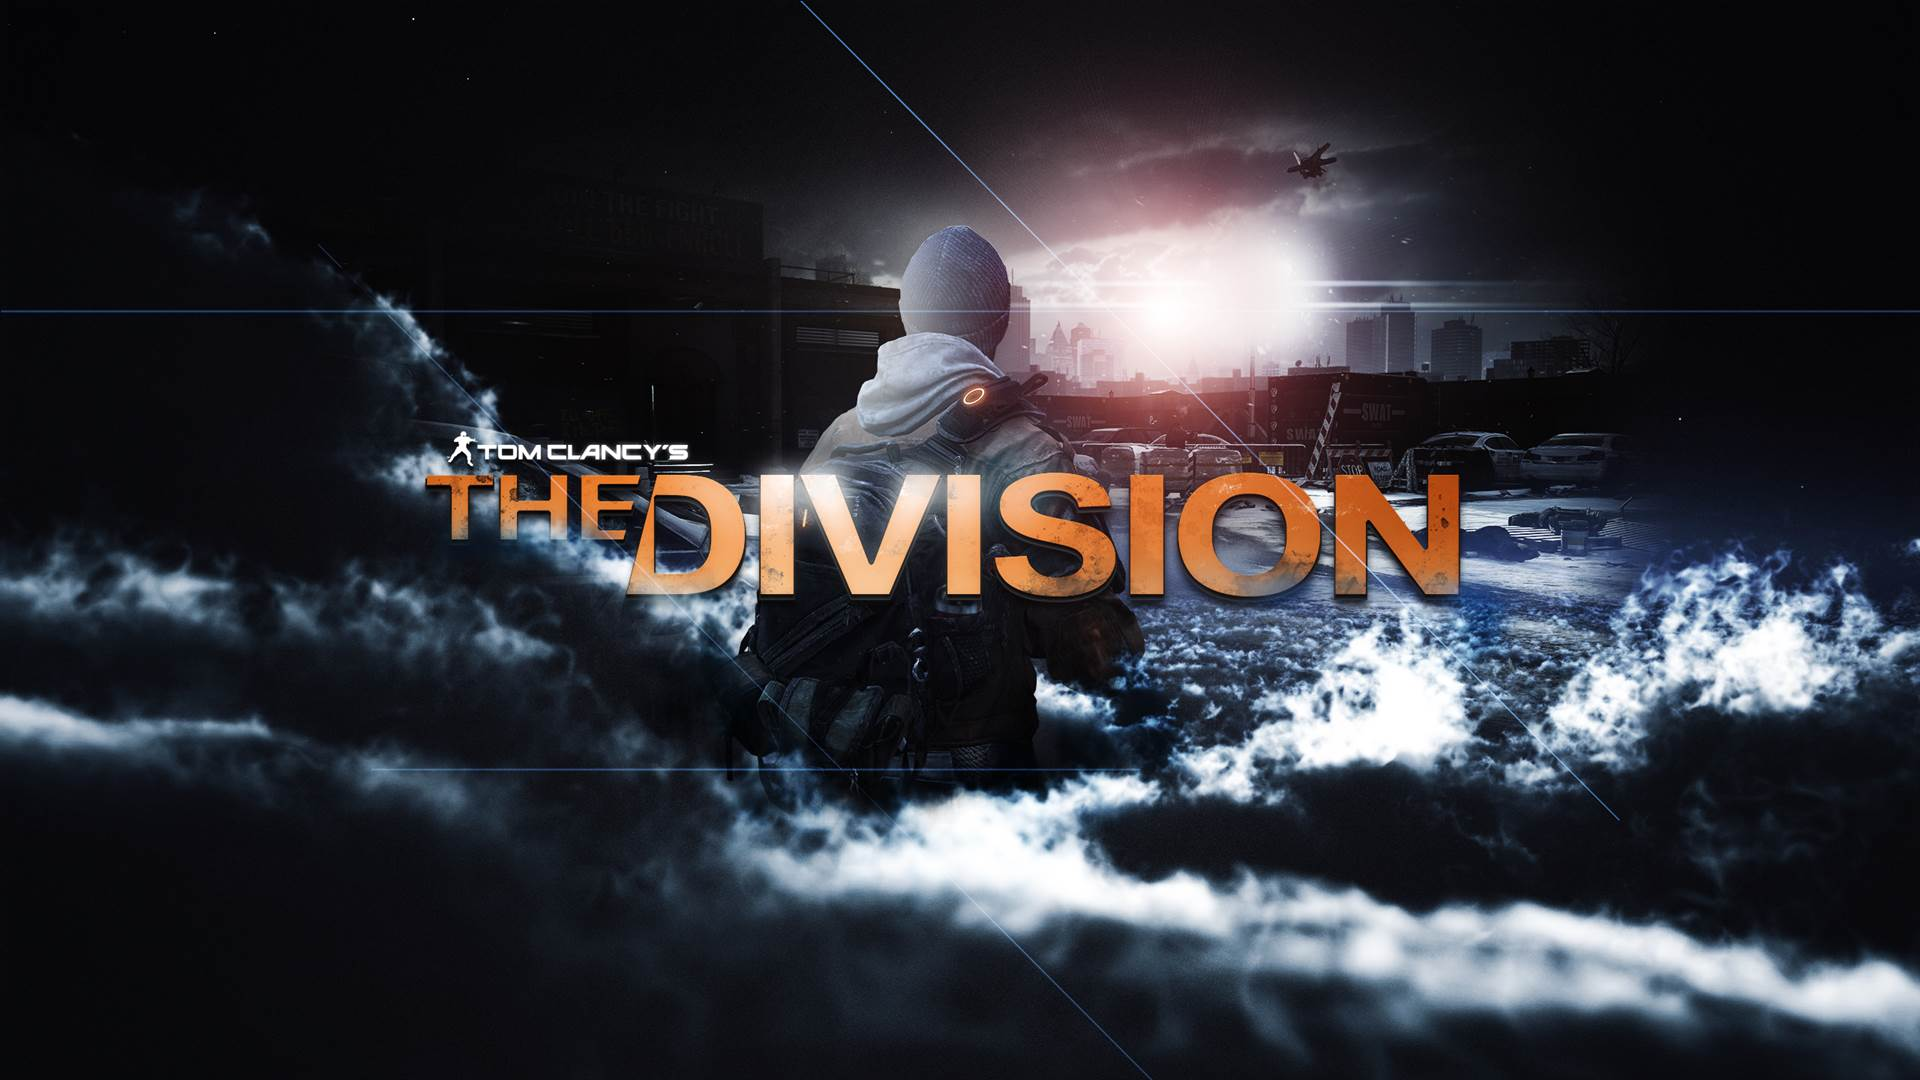 tom clancy's the division wallpapers in 1080p hd